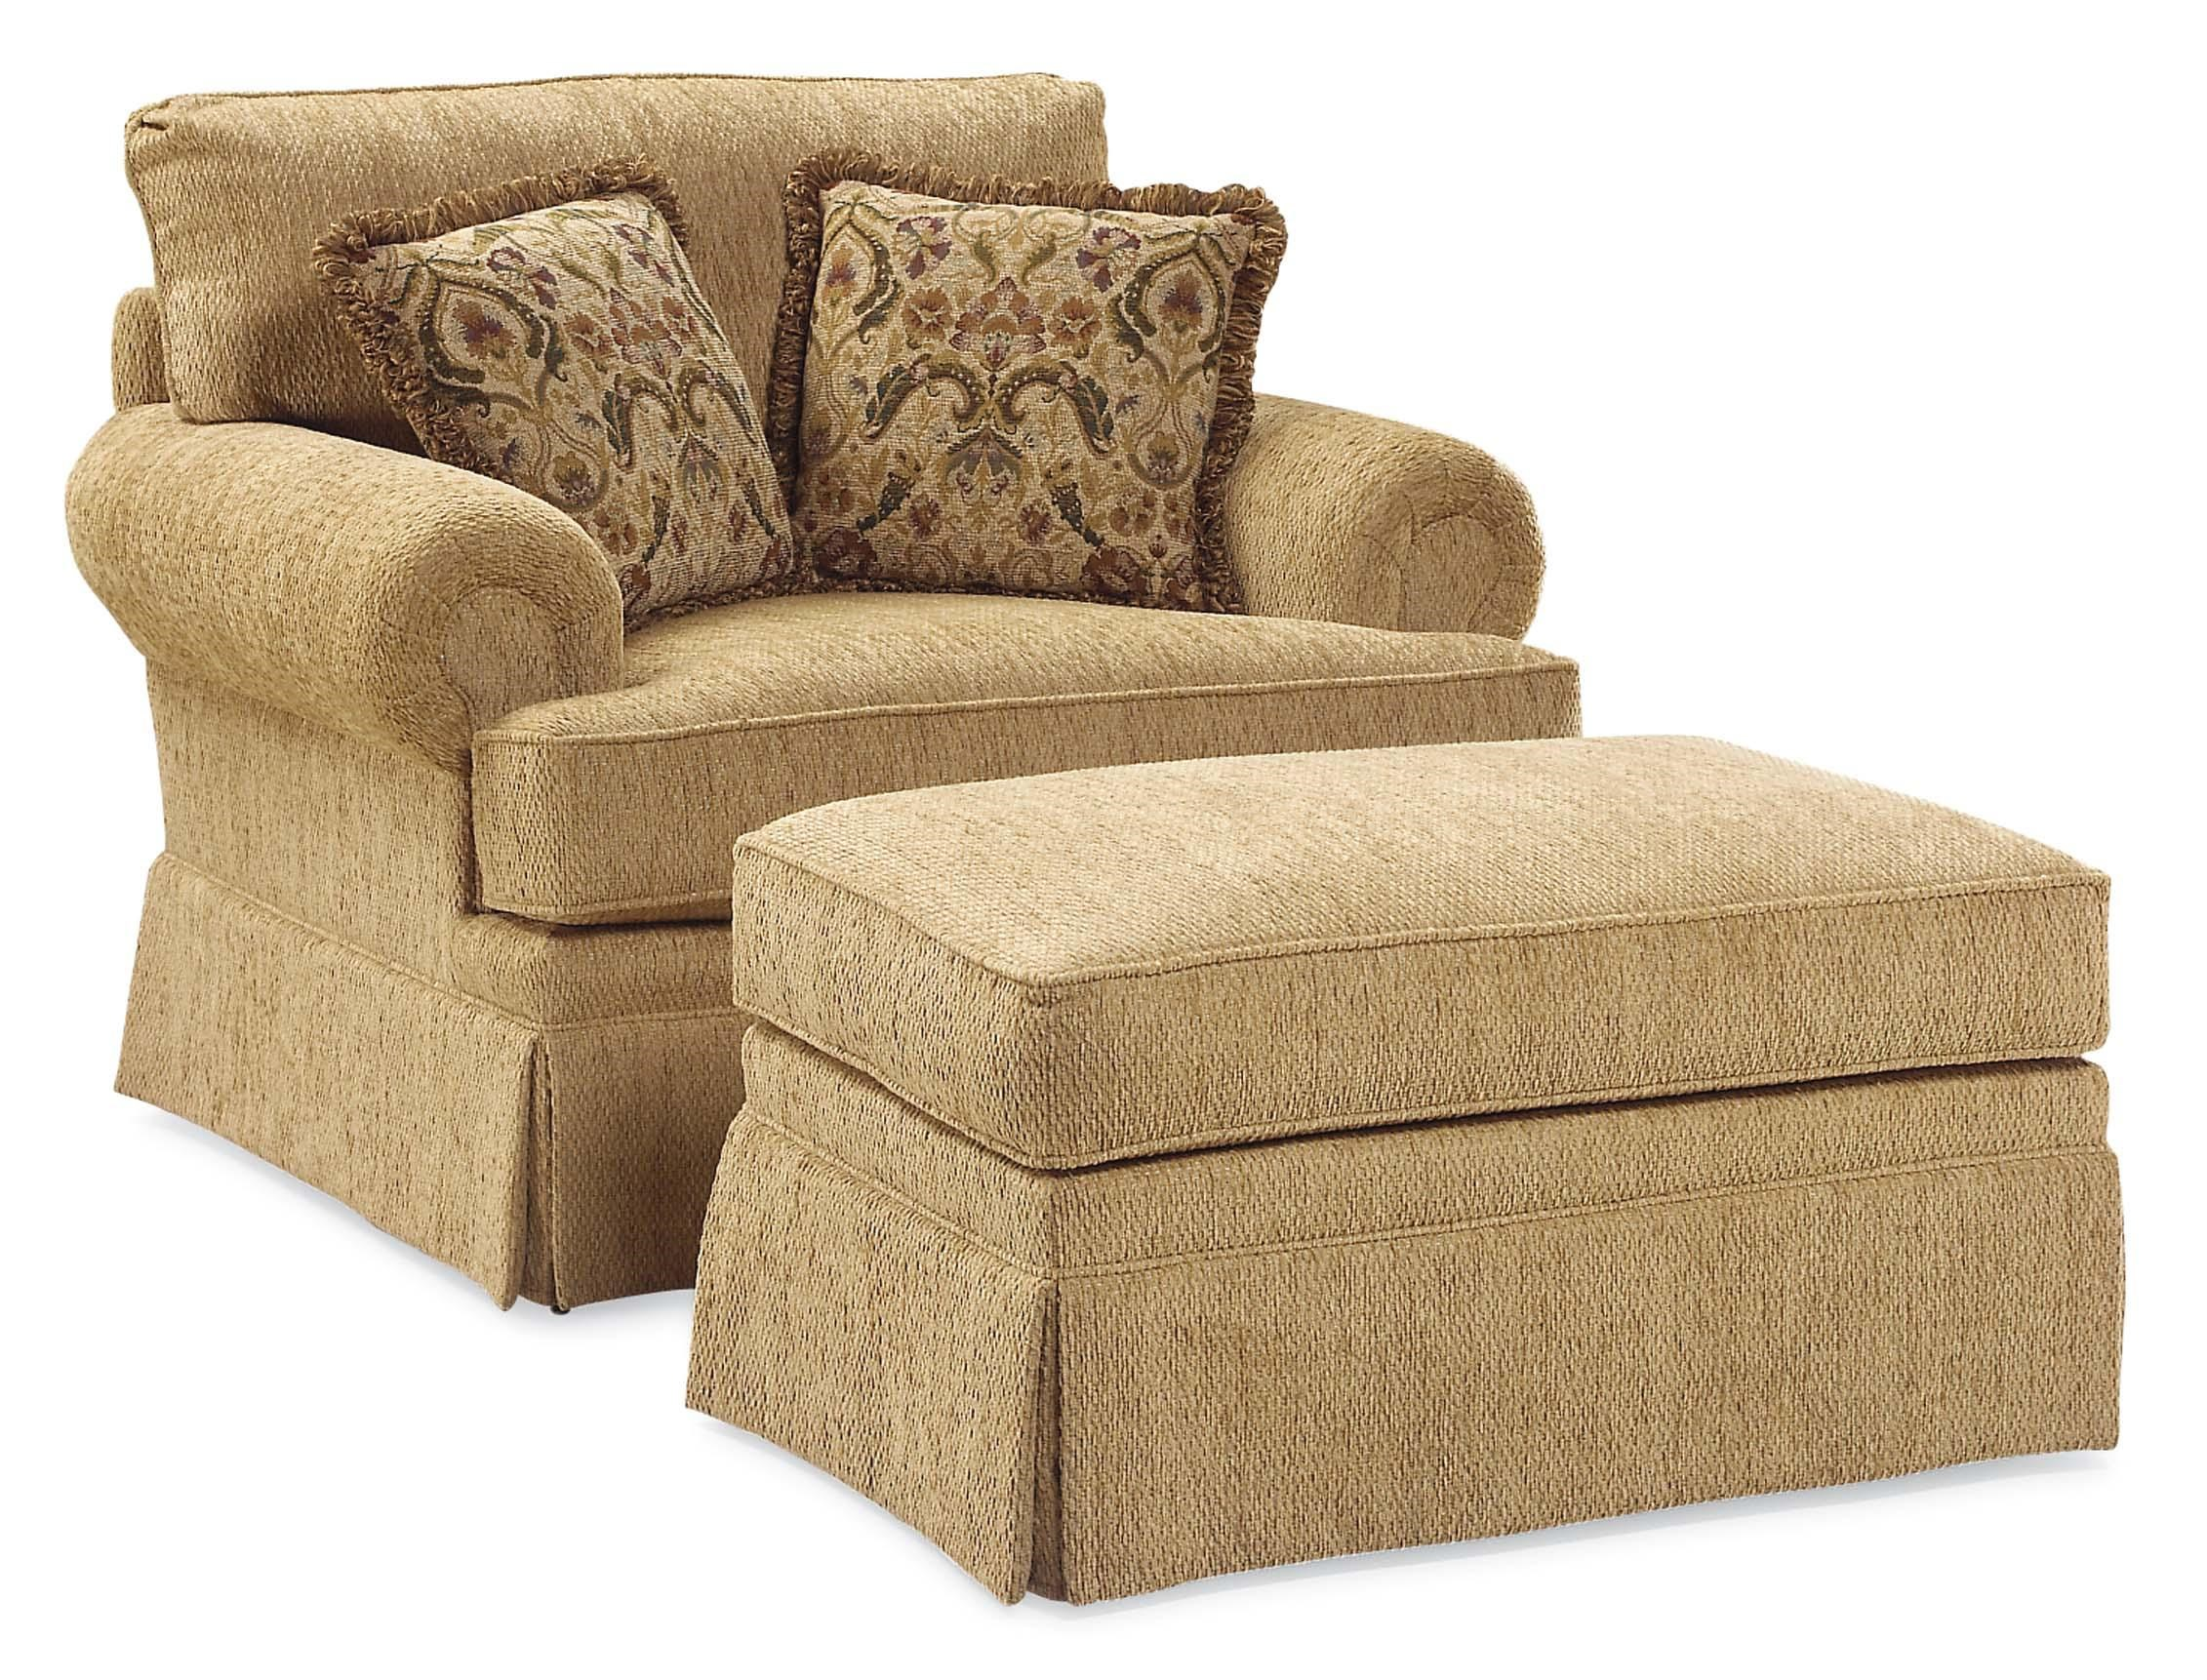 Fairfield 3736 Oversized Skirted Lounge Chair and Ottoman bination Belfo